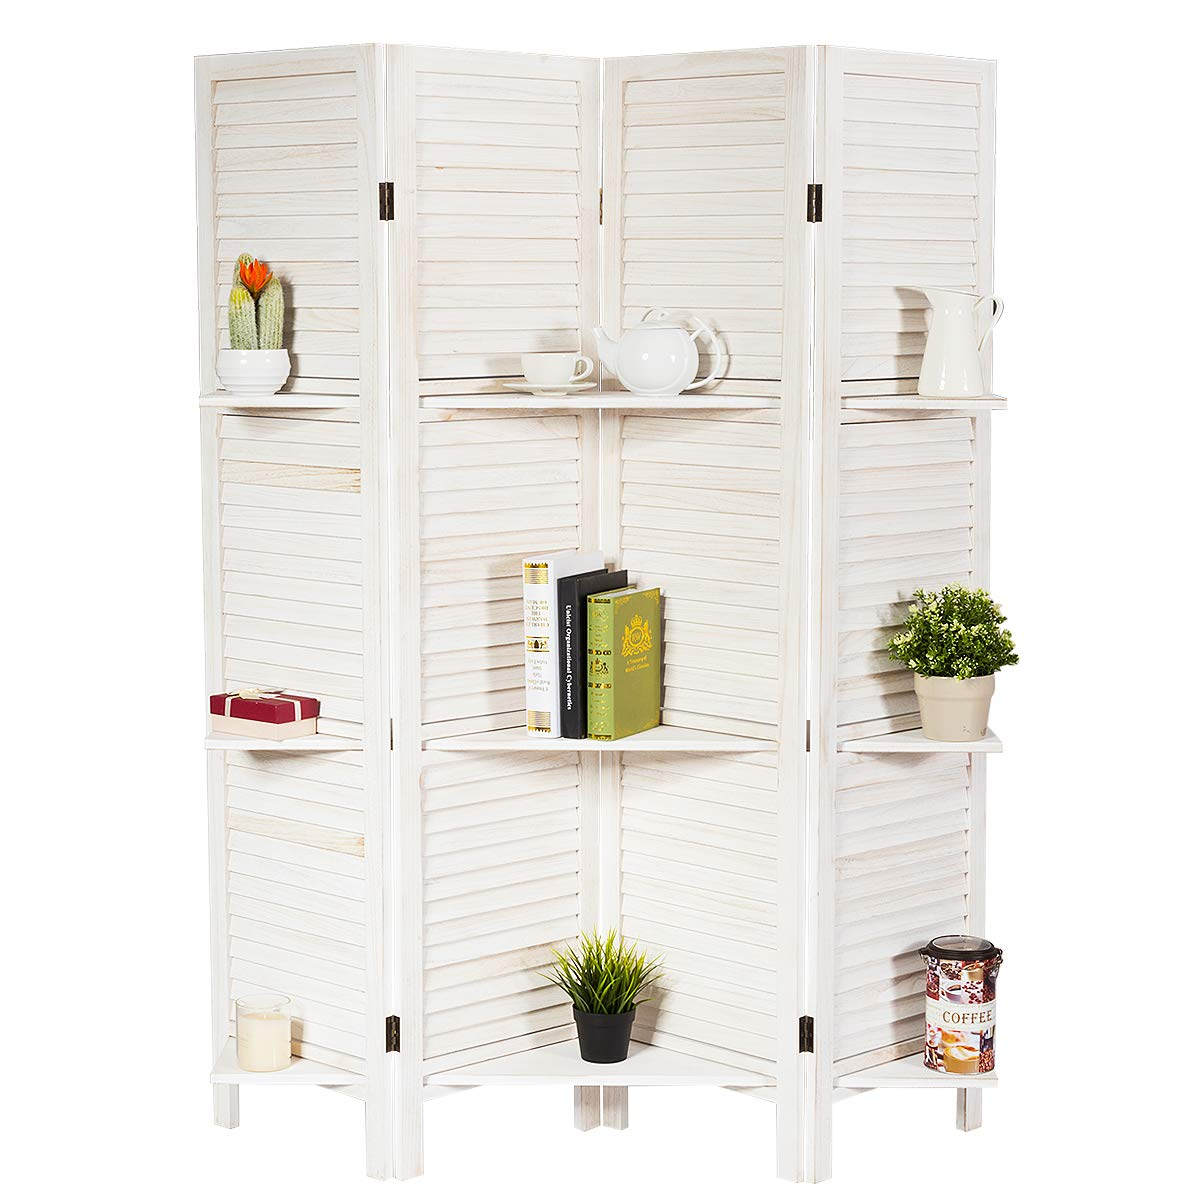 Giantex 4 Panel Folding Room Divider Screen w/ 3 Display Shelves, 5.6 Ft Tall Wood Oriental Freestanding Partition Privacy Room Divider w/Mounting Plate for Home, Office, Restaurant, Bedroom (White)